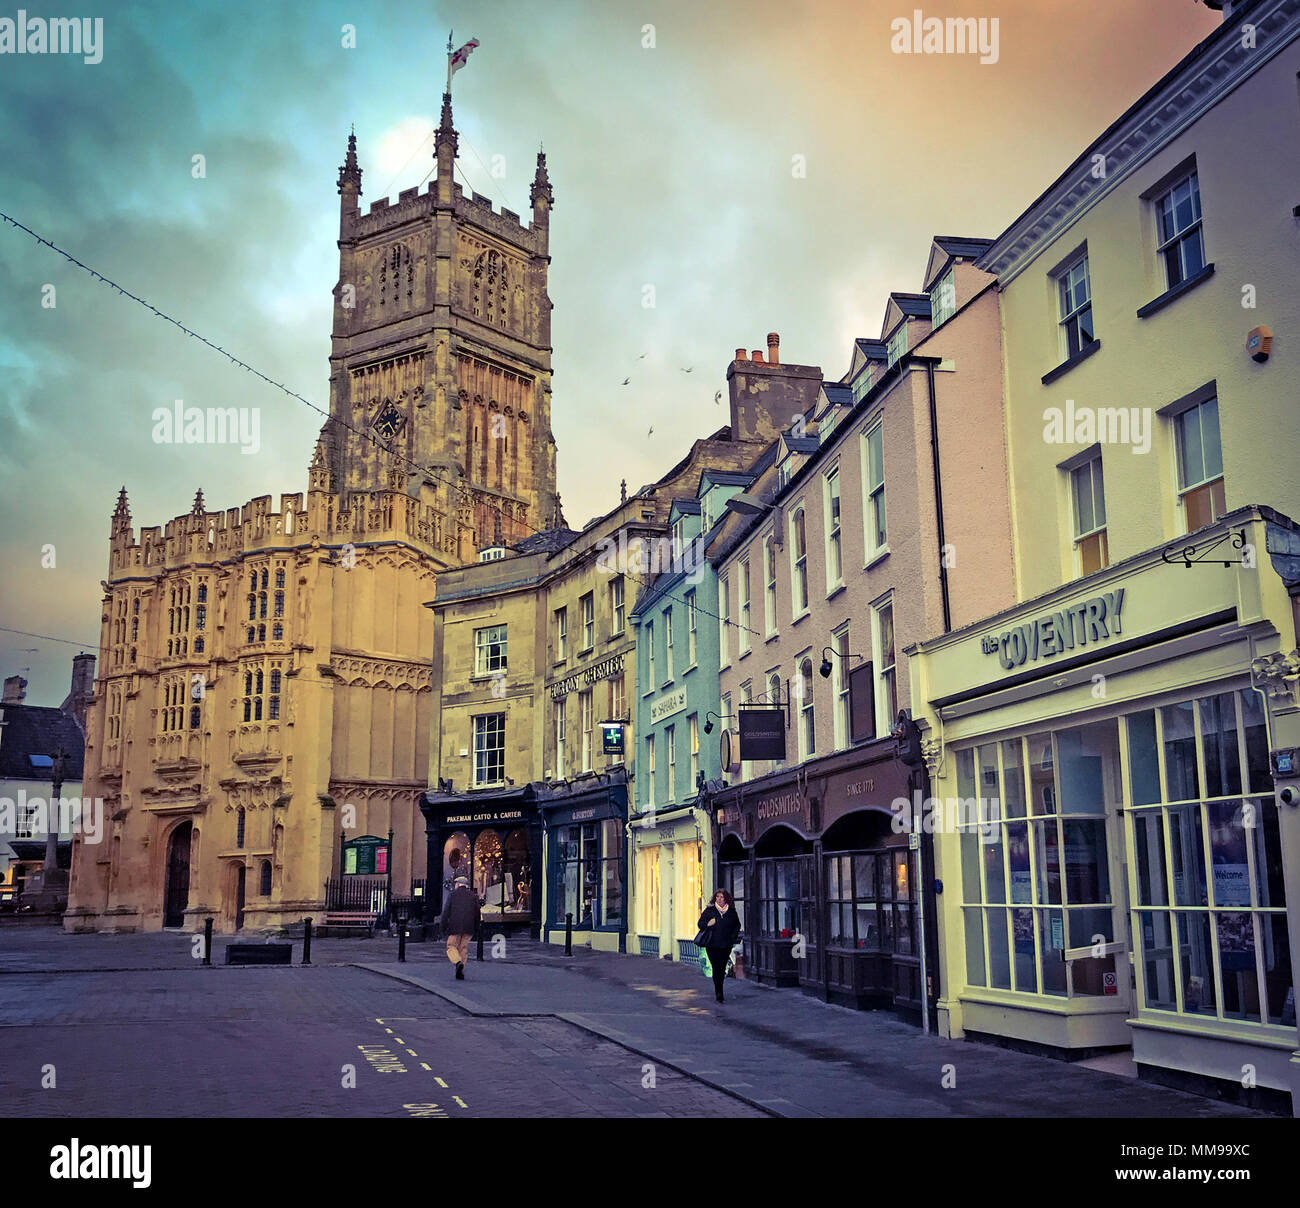 Early morning Cirencester market town centre, Cotswolds, England, UK - Stock Image